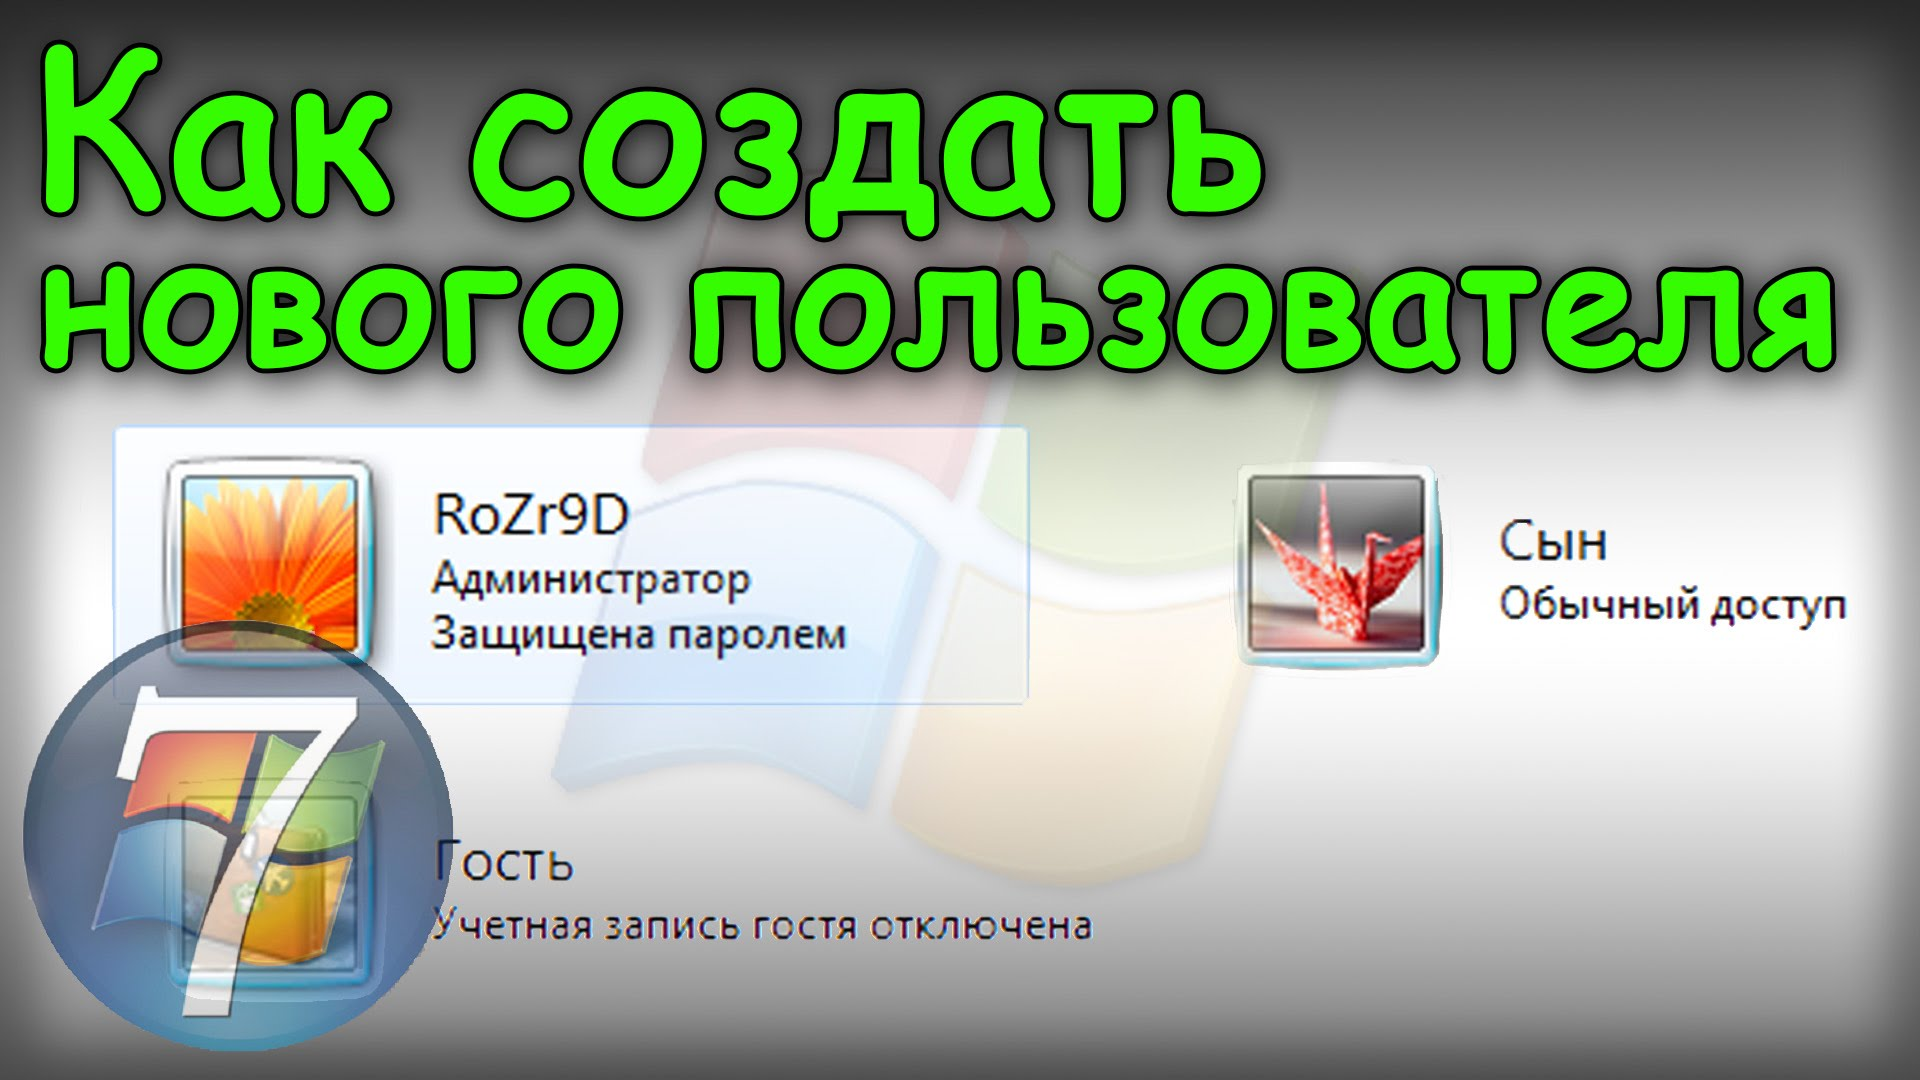 Как создать нового пользователя на компьютере в Windows 7?